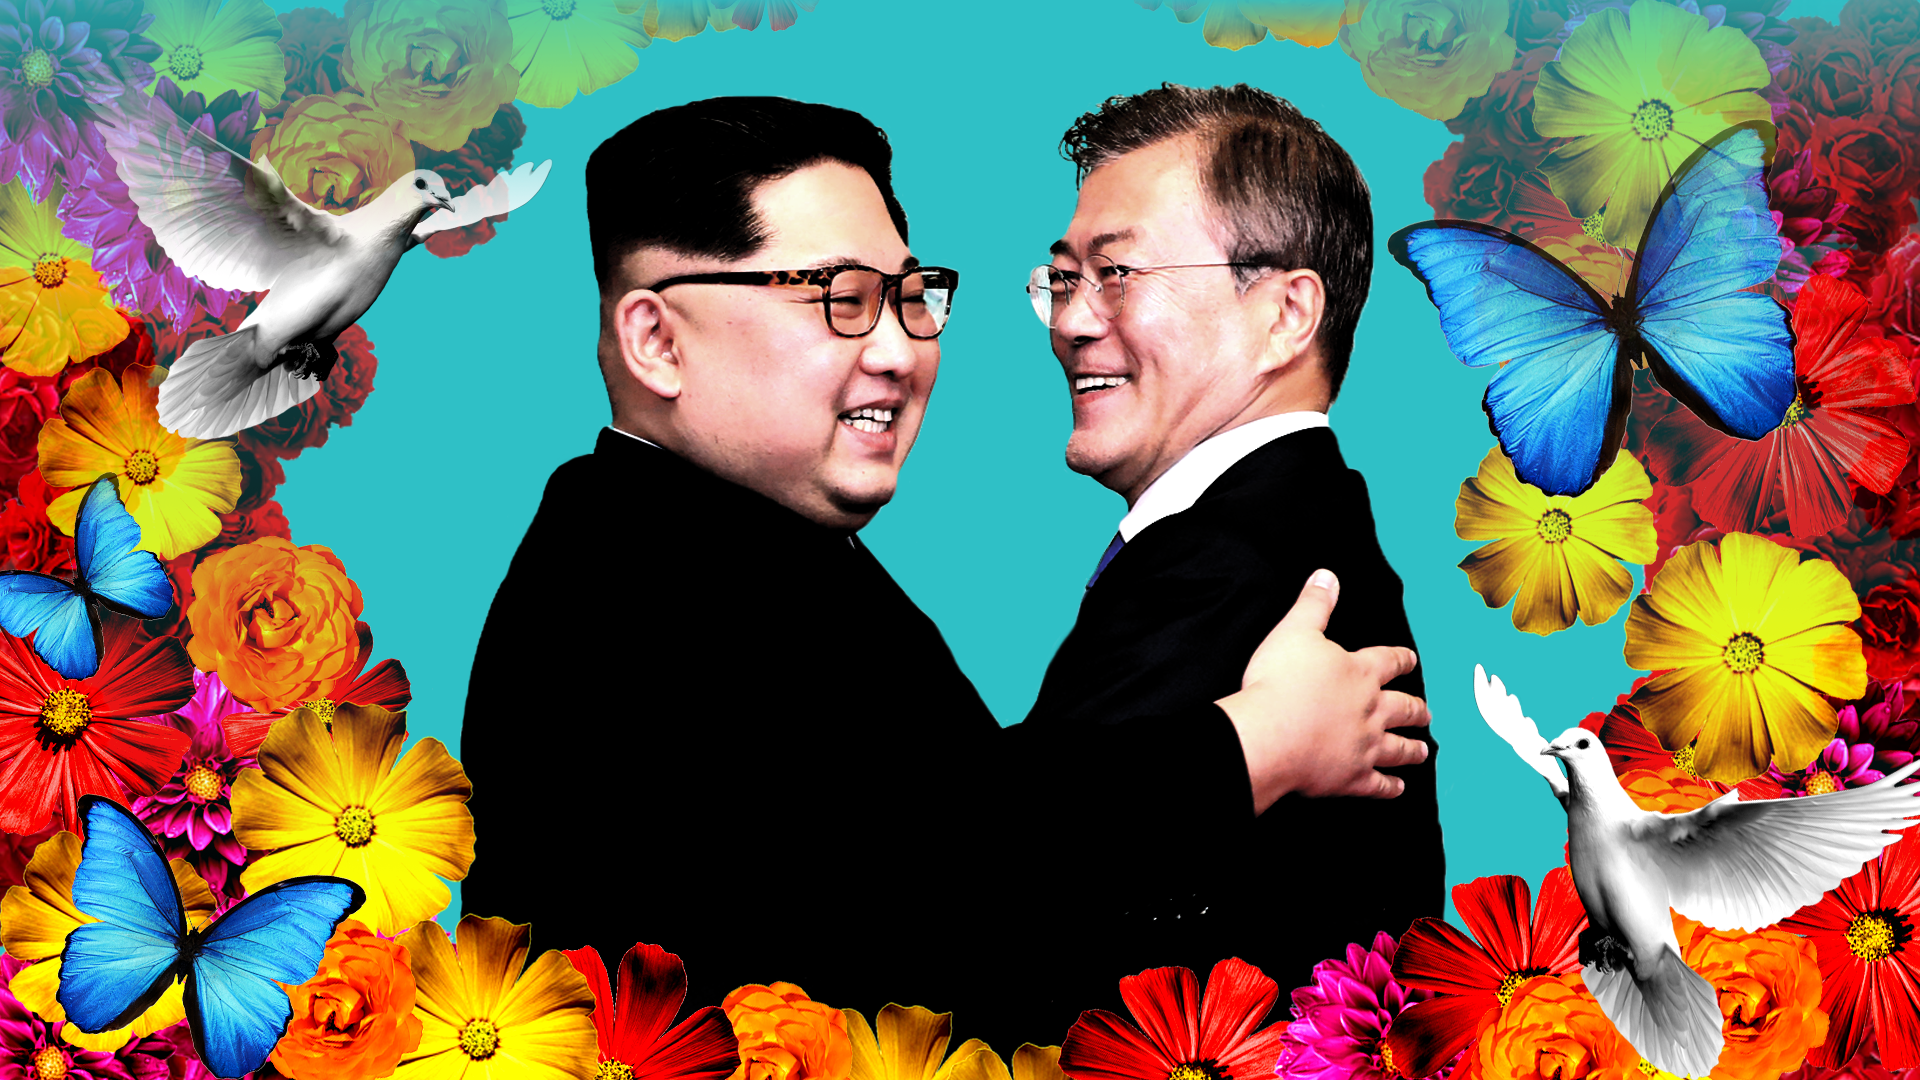 North Korean leader Kim Jong-un and South Korean President Moon Jae-in, with flowers and doves